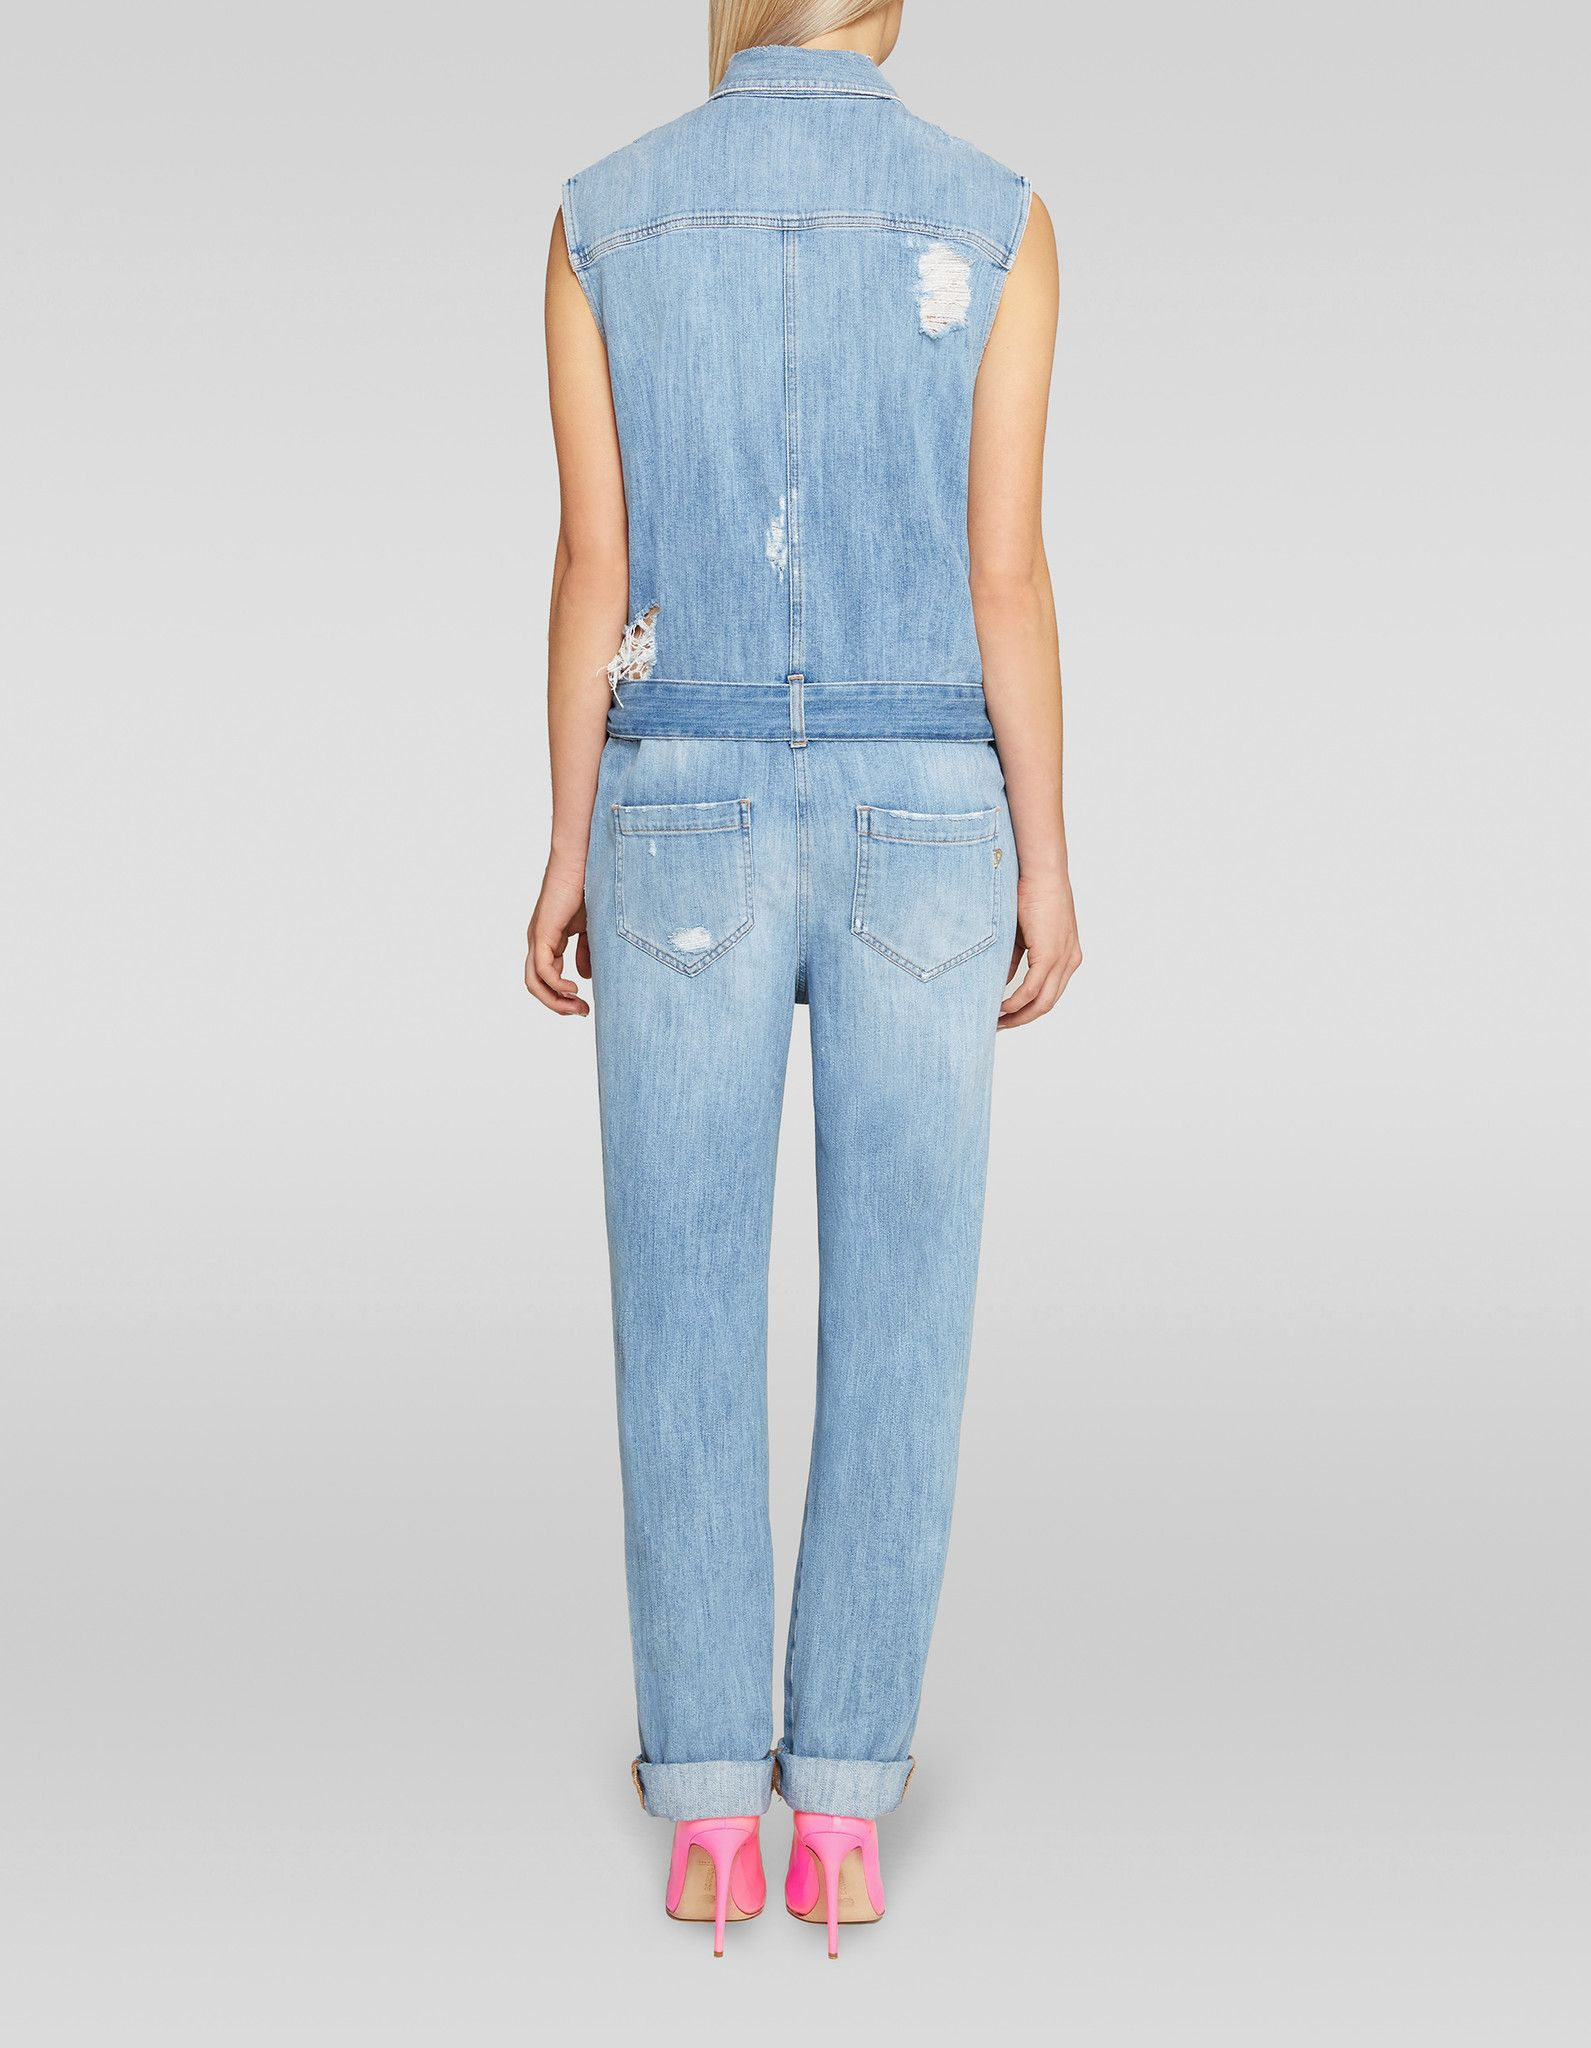 DONDUP JUMPSUIT IN DENIM STRETCH